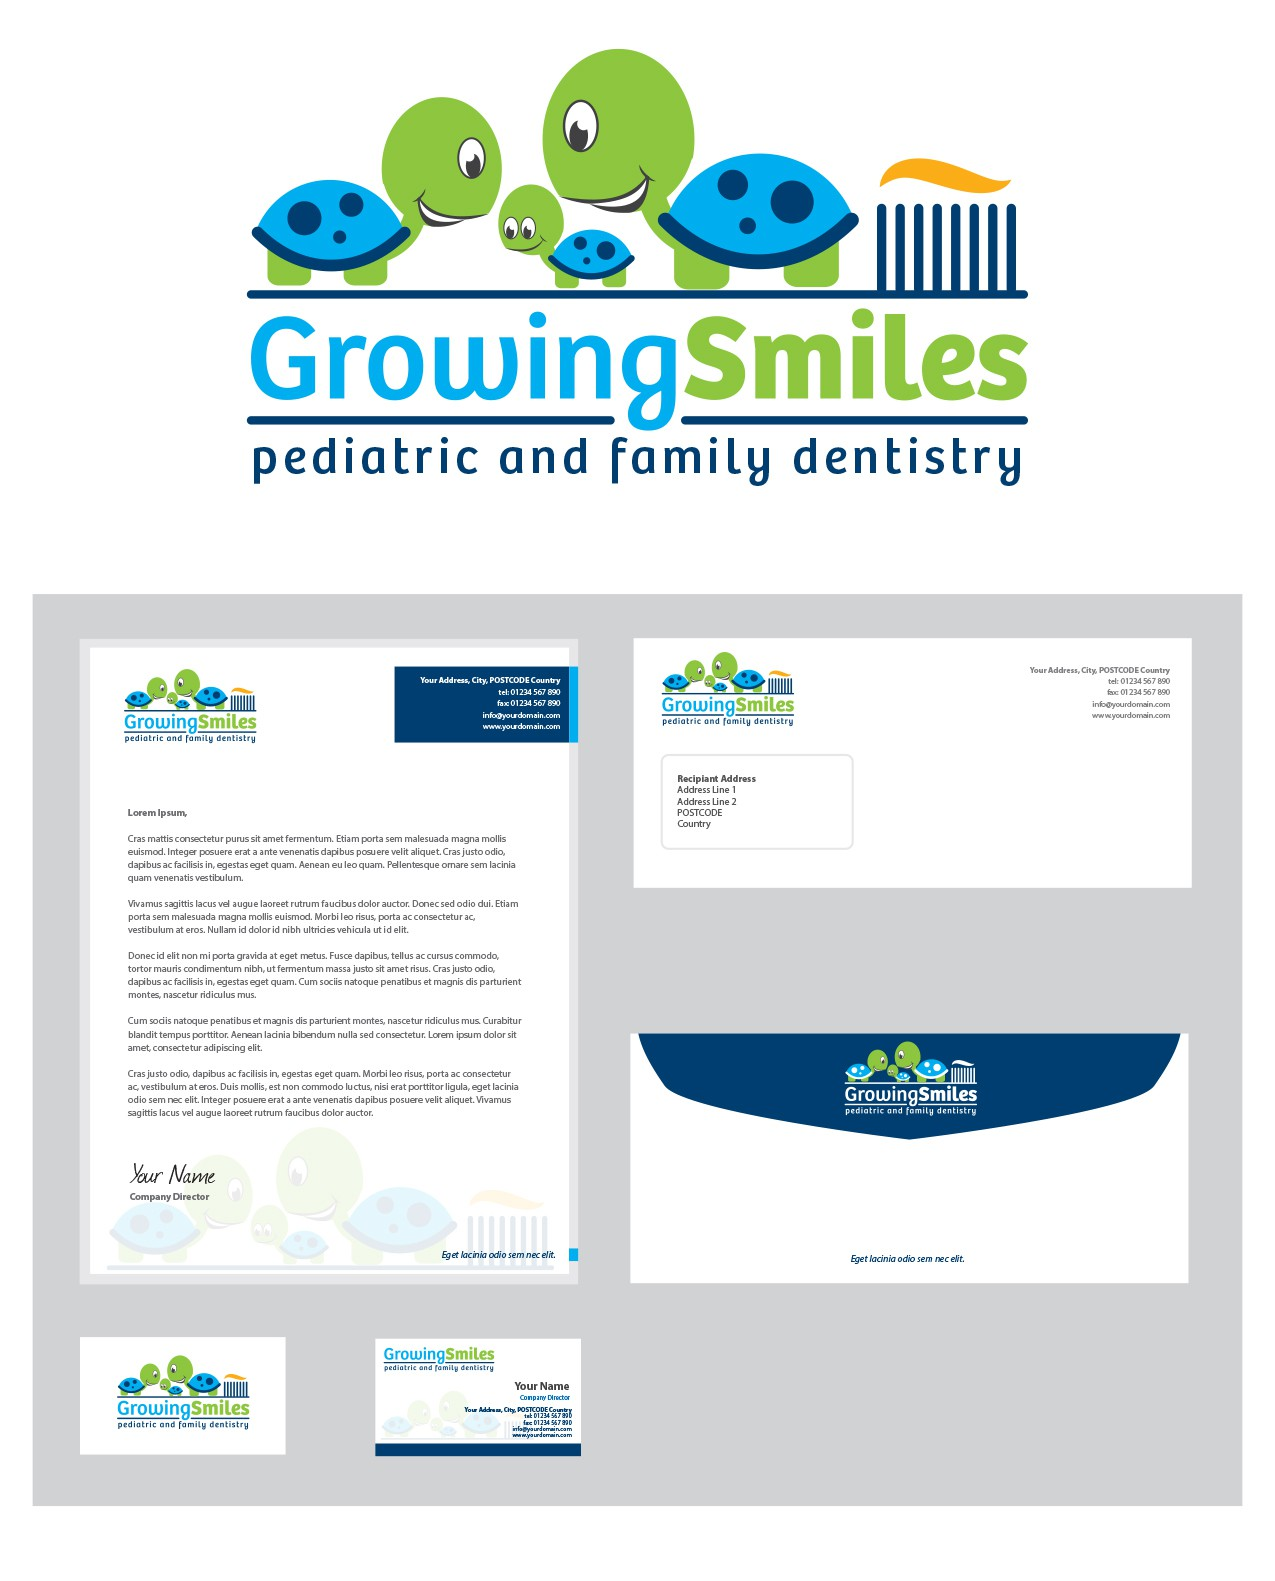 Make our patient's smiles grow with a new logo for Growing Smiles!